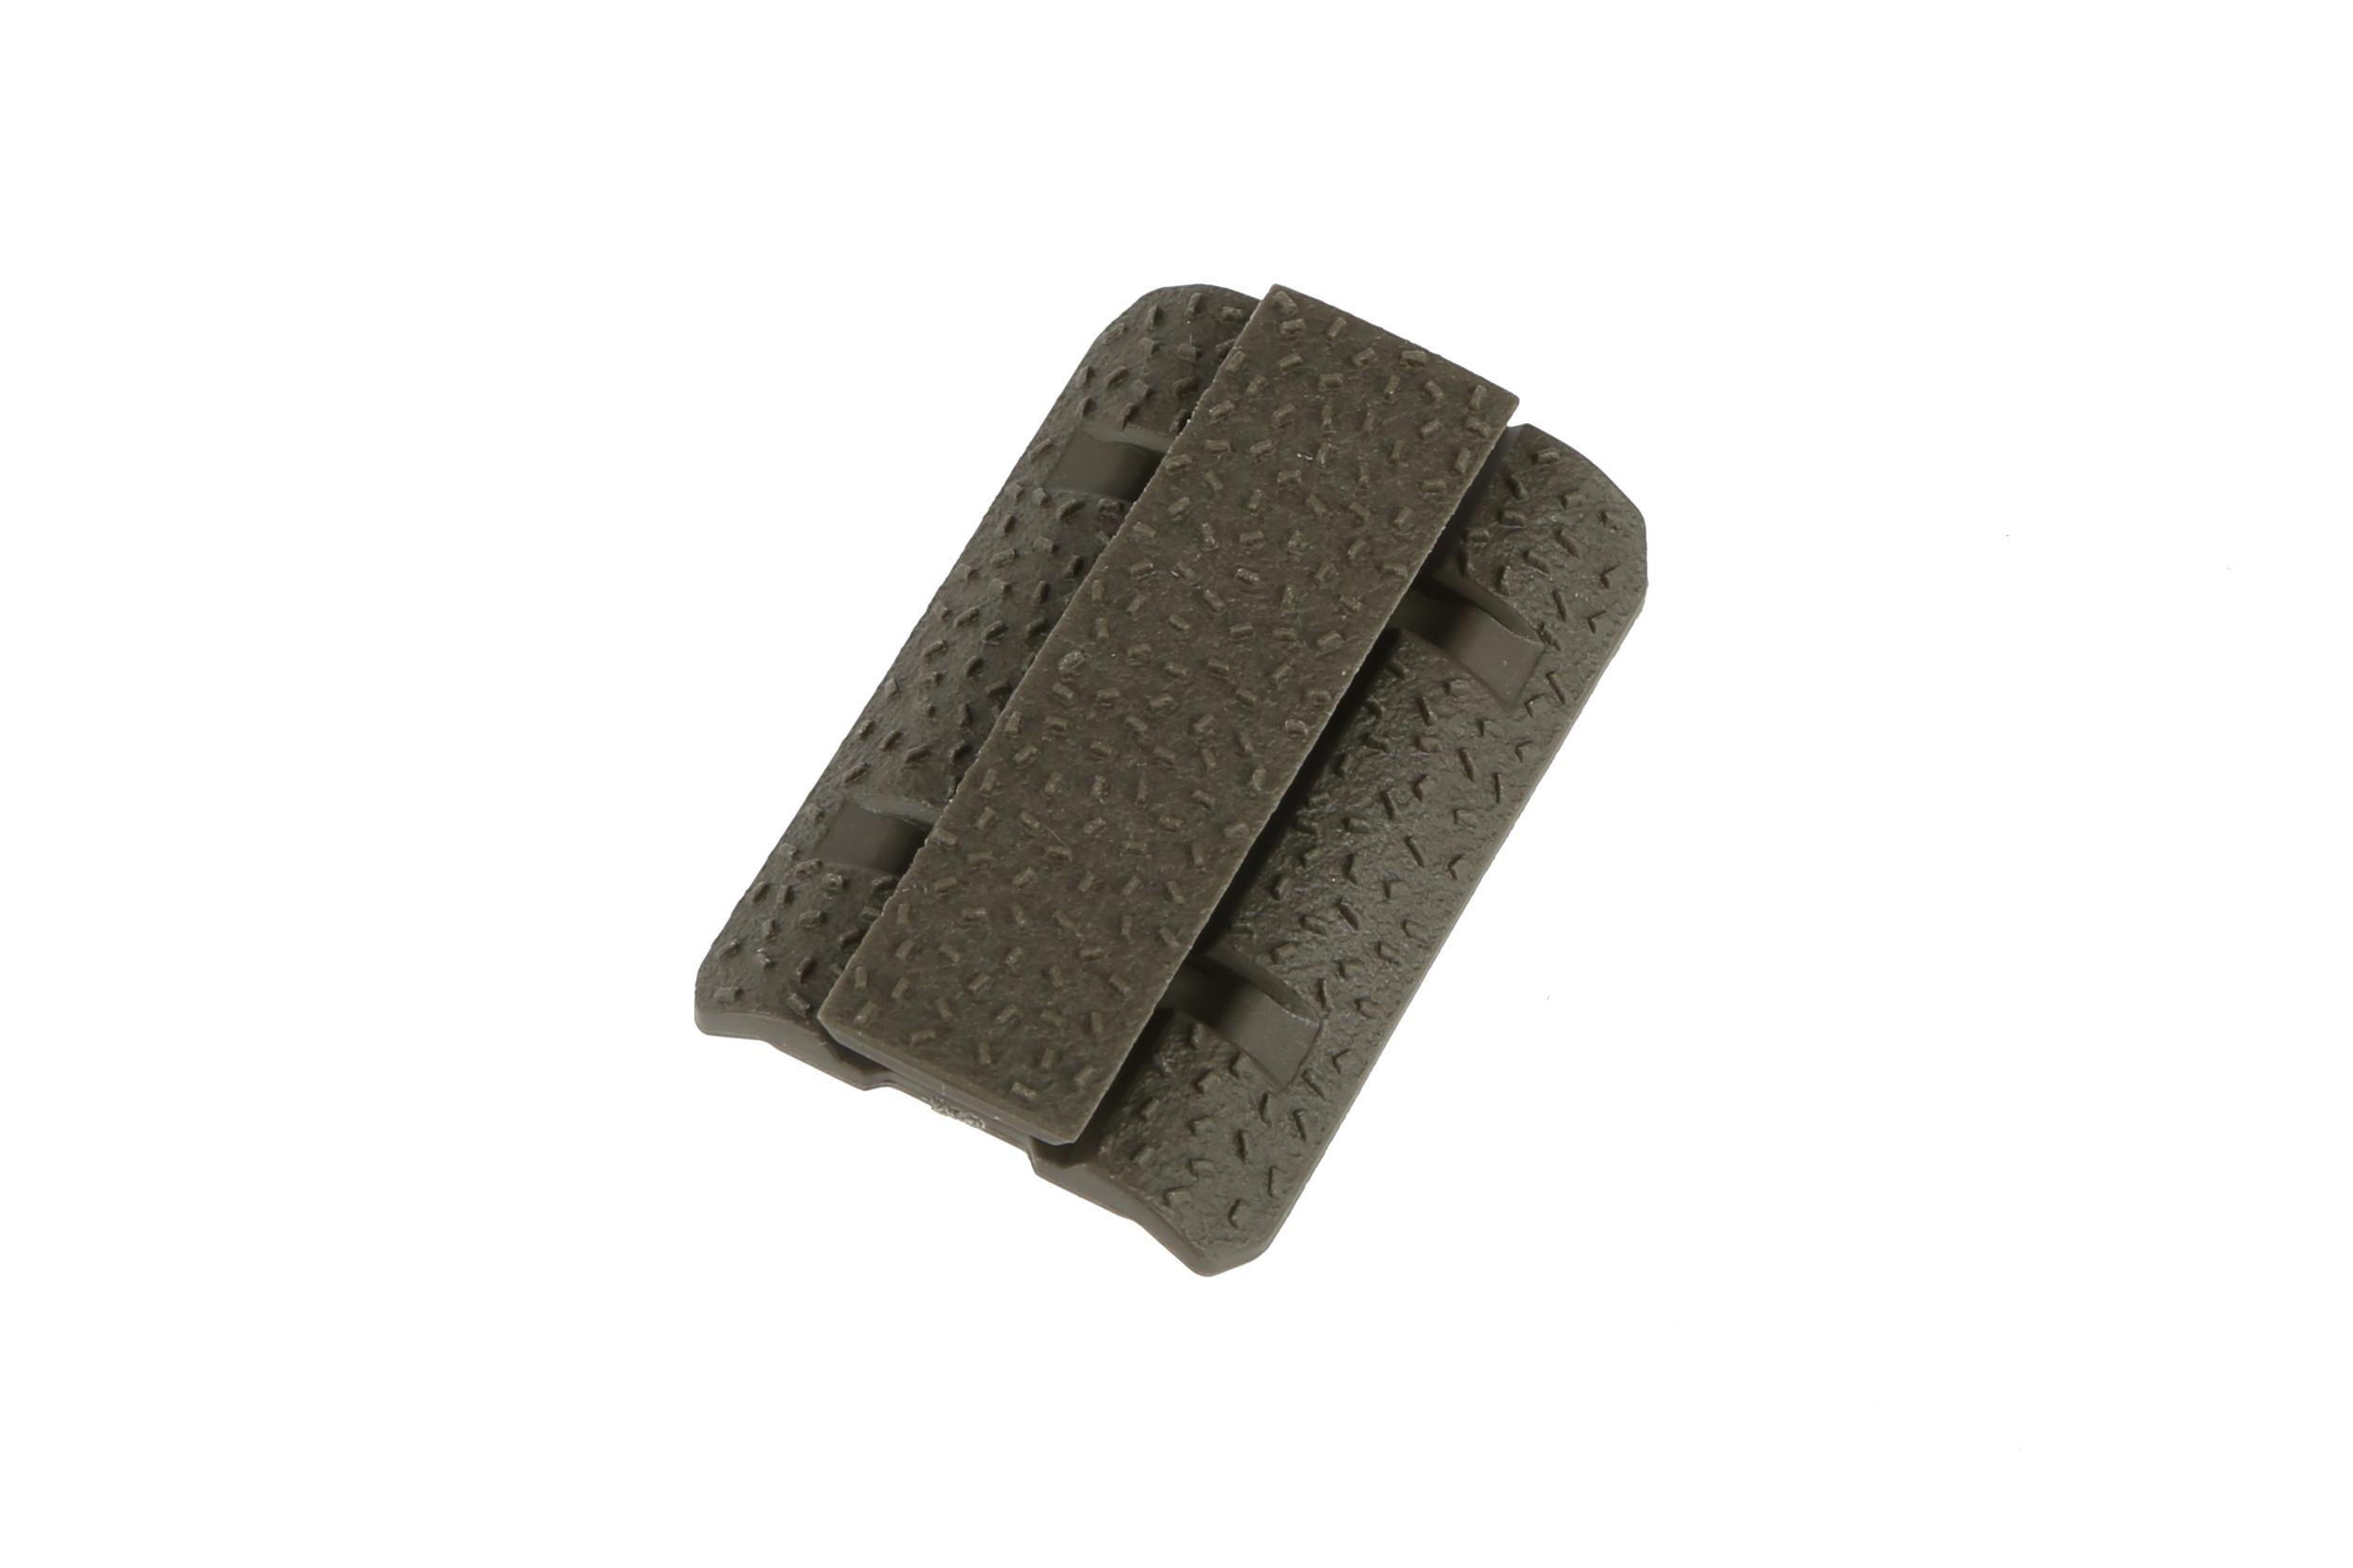 The Magpul Industries od green m-lok rail cover features an aggressive no slip texture